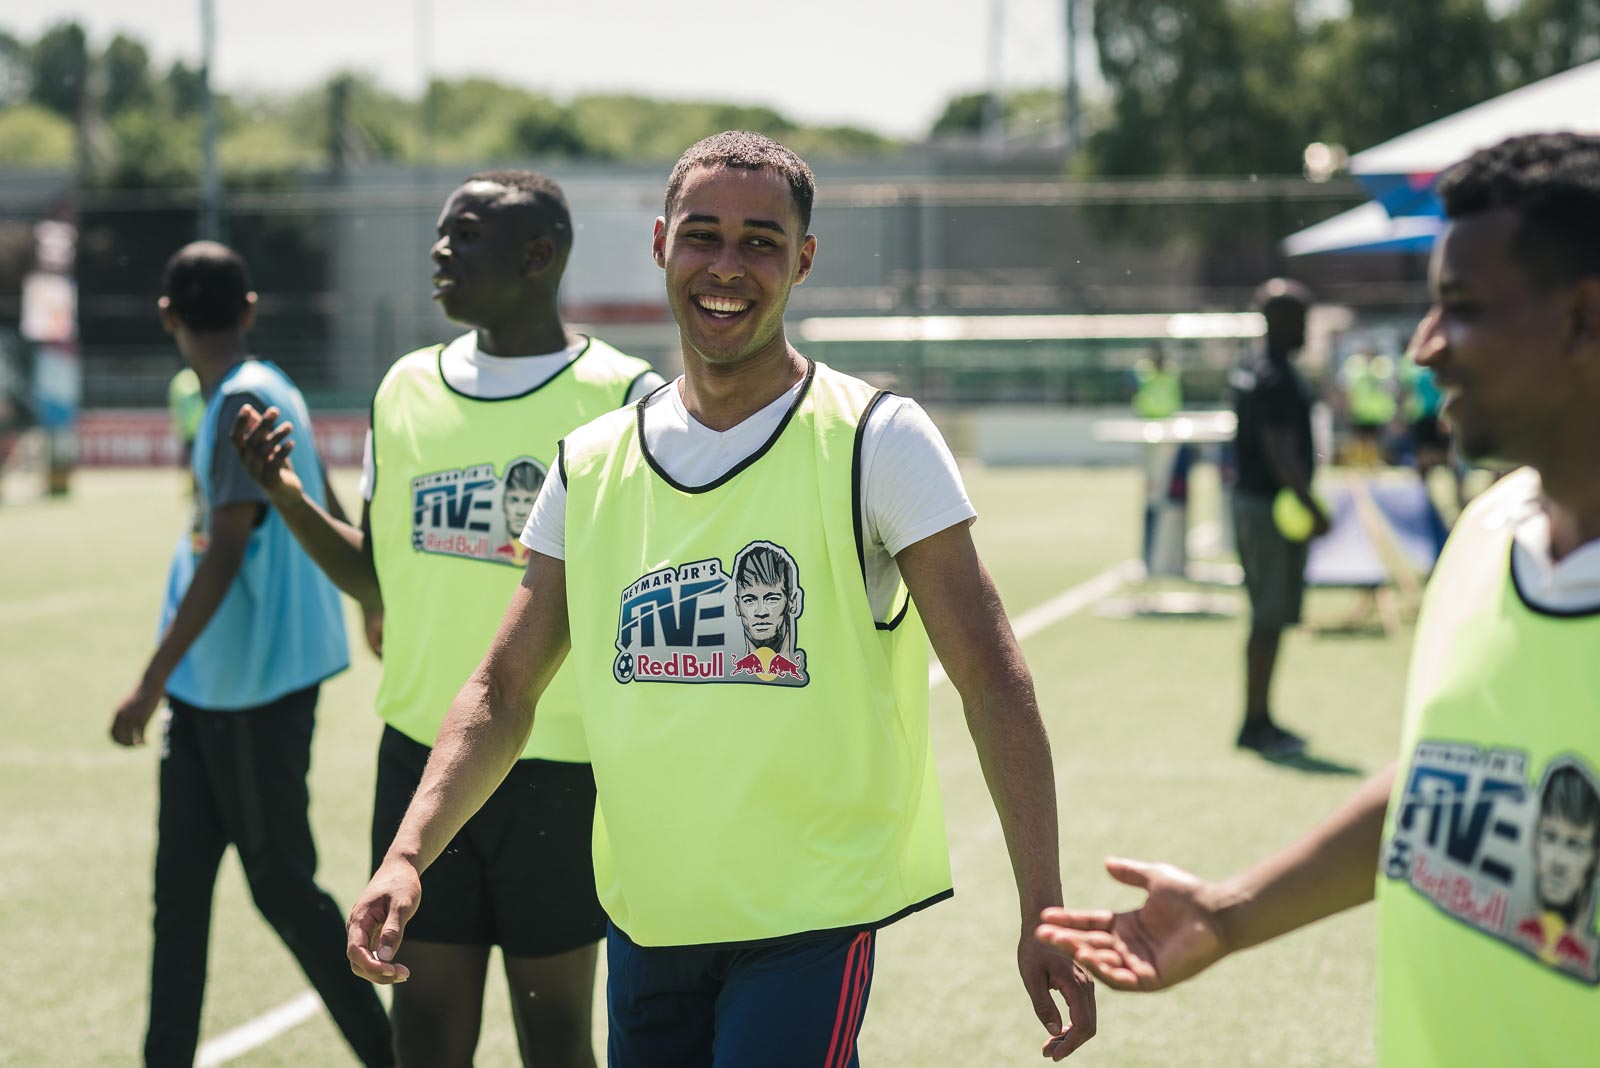 All smiles for these football players during Red Bull Neymar Jr's Five in Holland